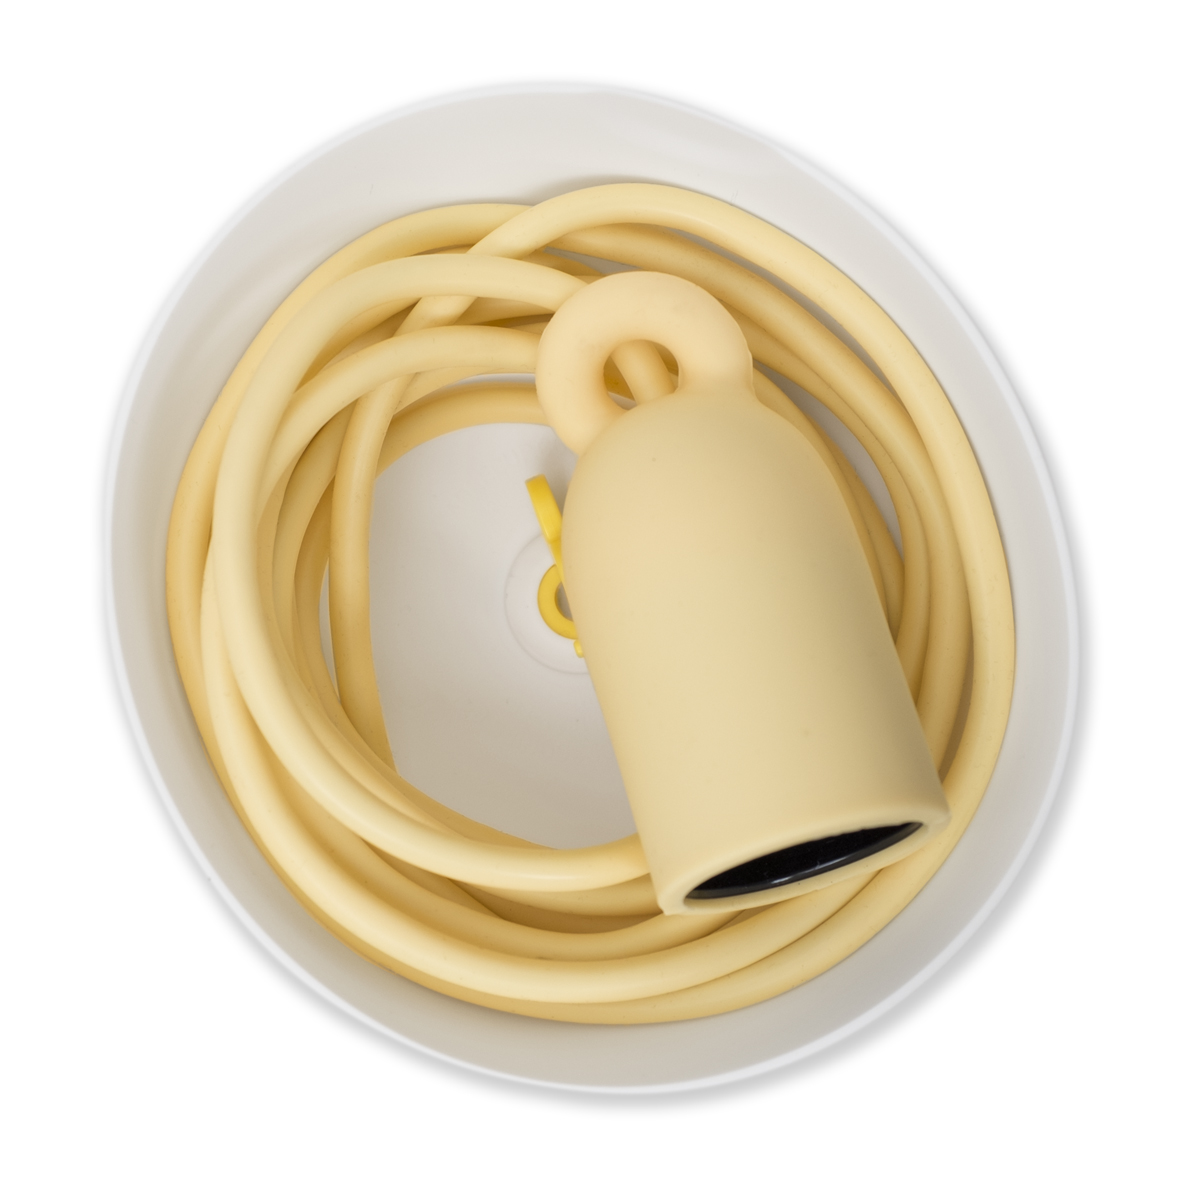 E27 lamp holder with ceiling rose and 3 m cord